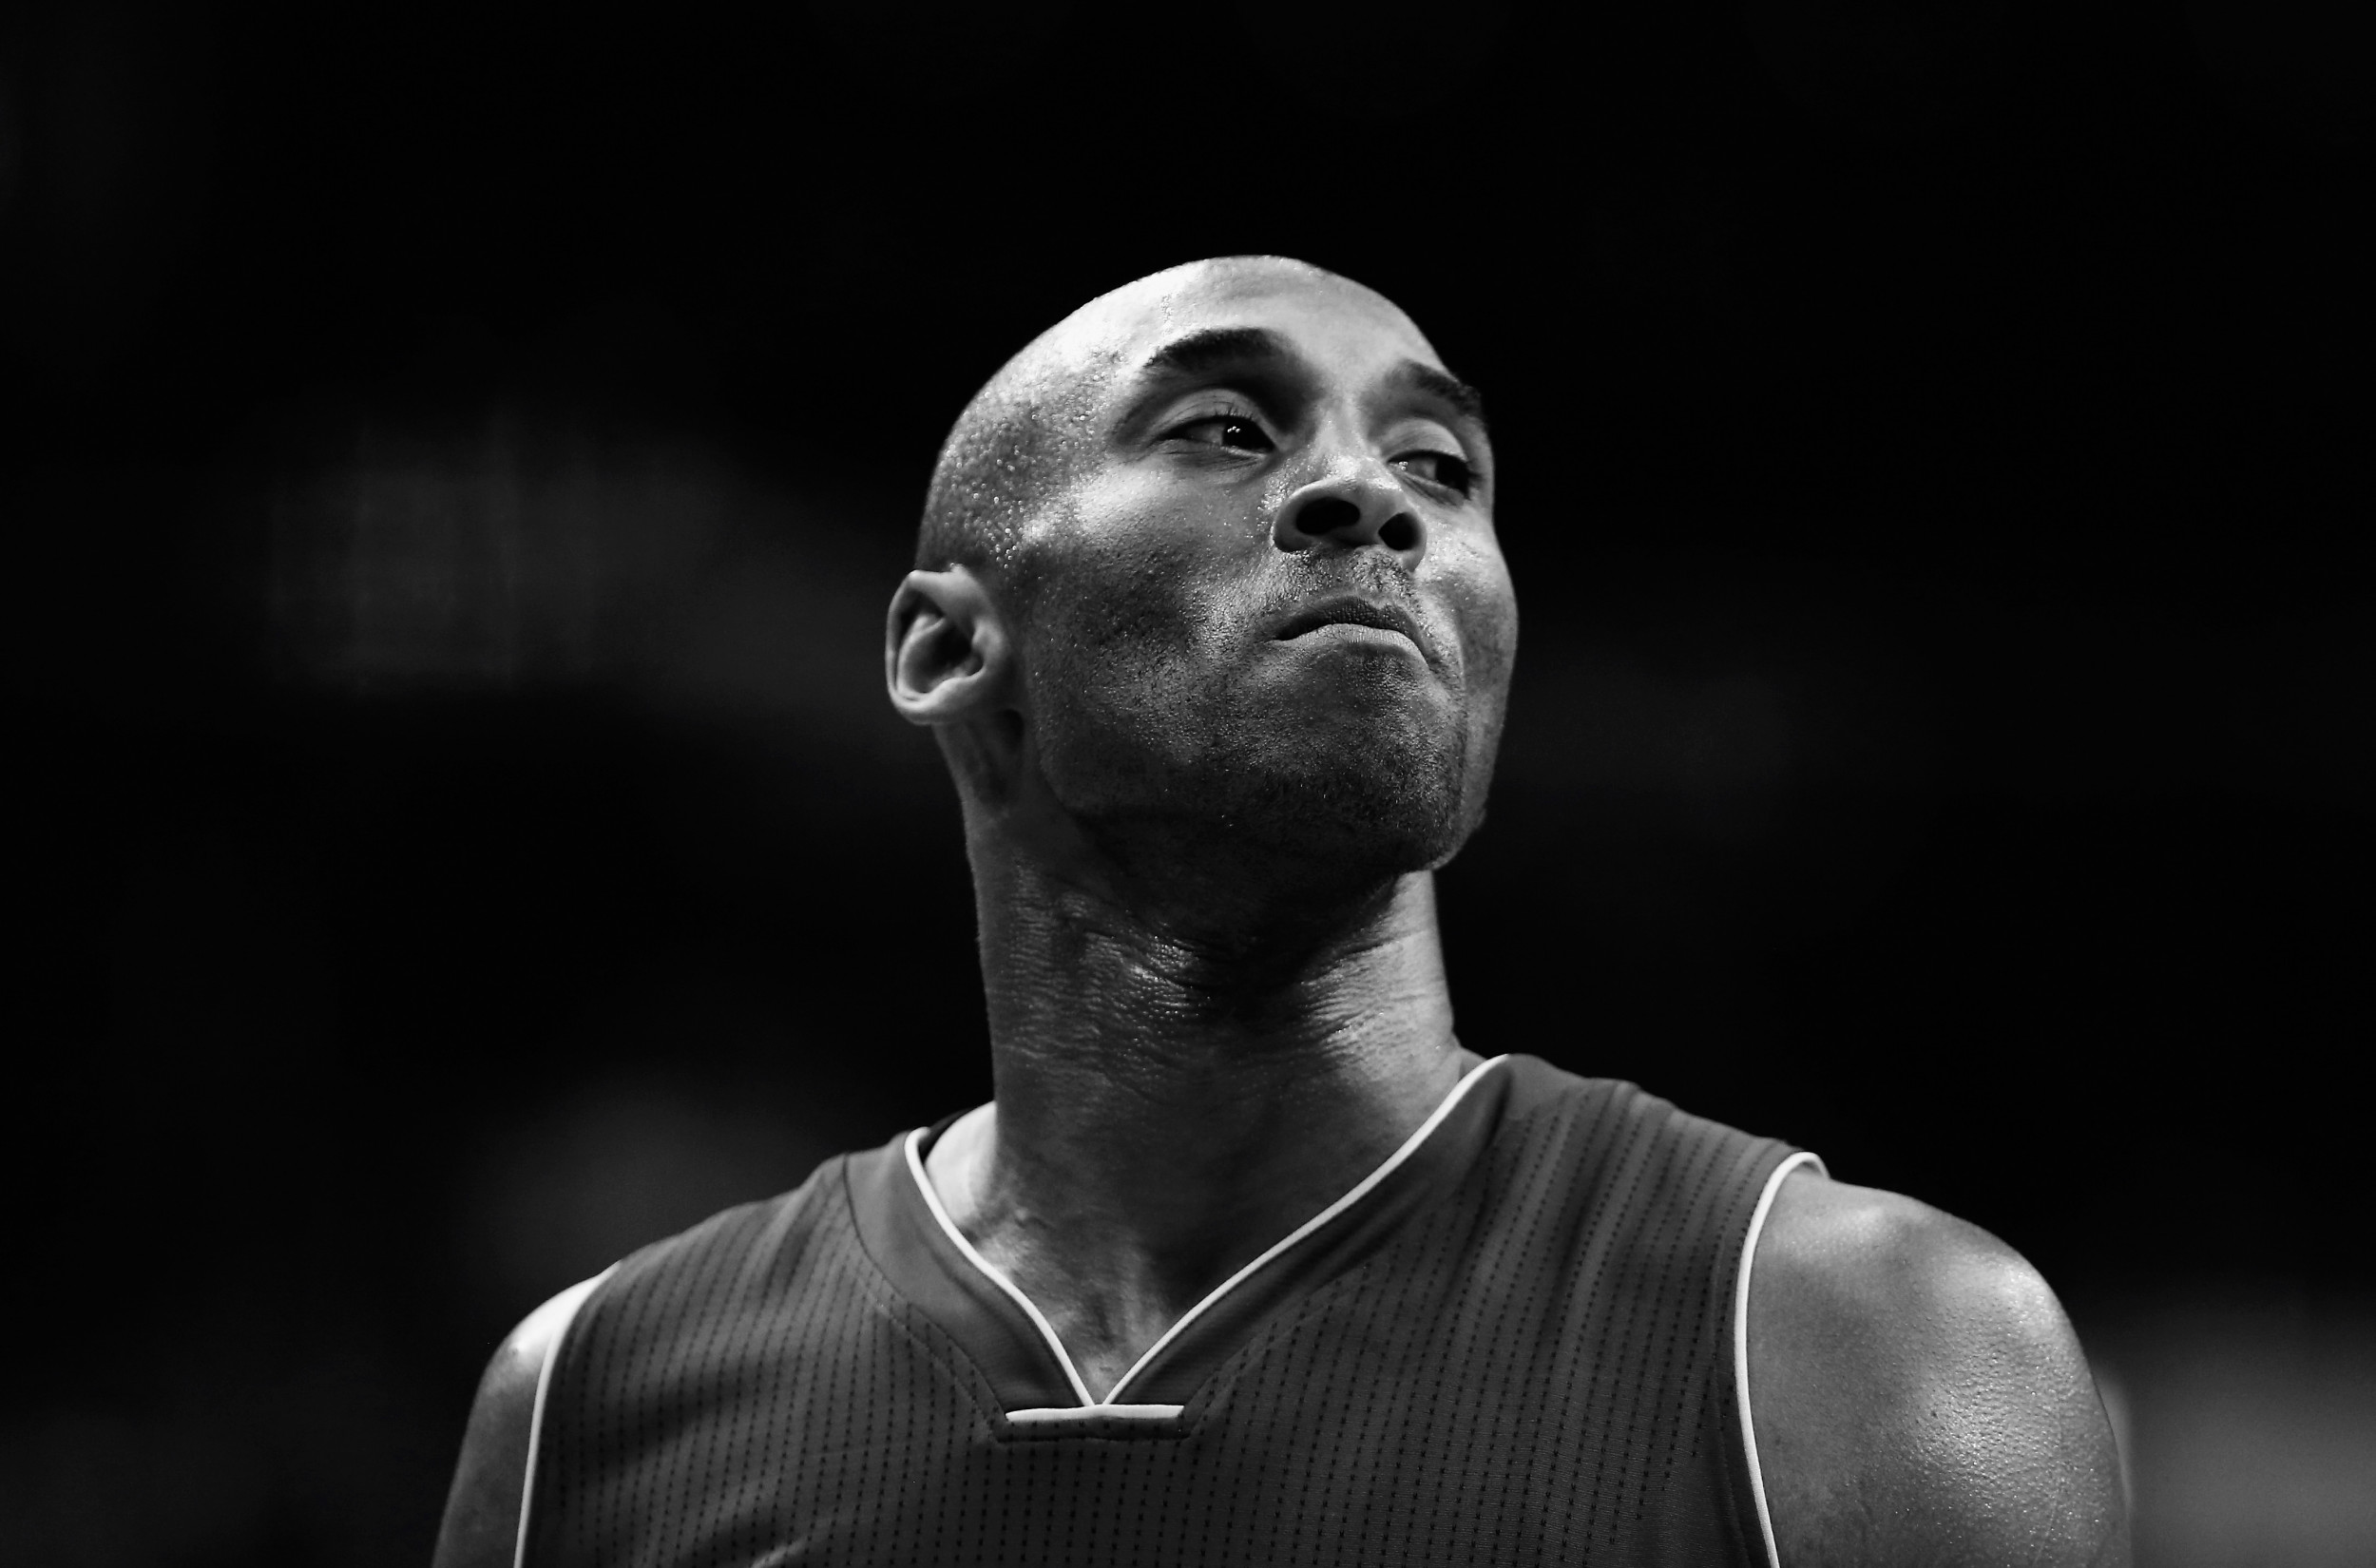 Nike Honour Kobe Bryant in Powerful New Ad Narrated by Kendrick Lamar